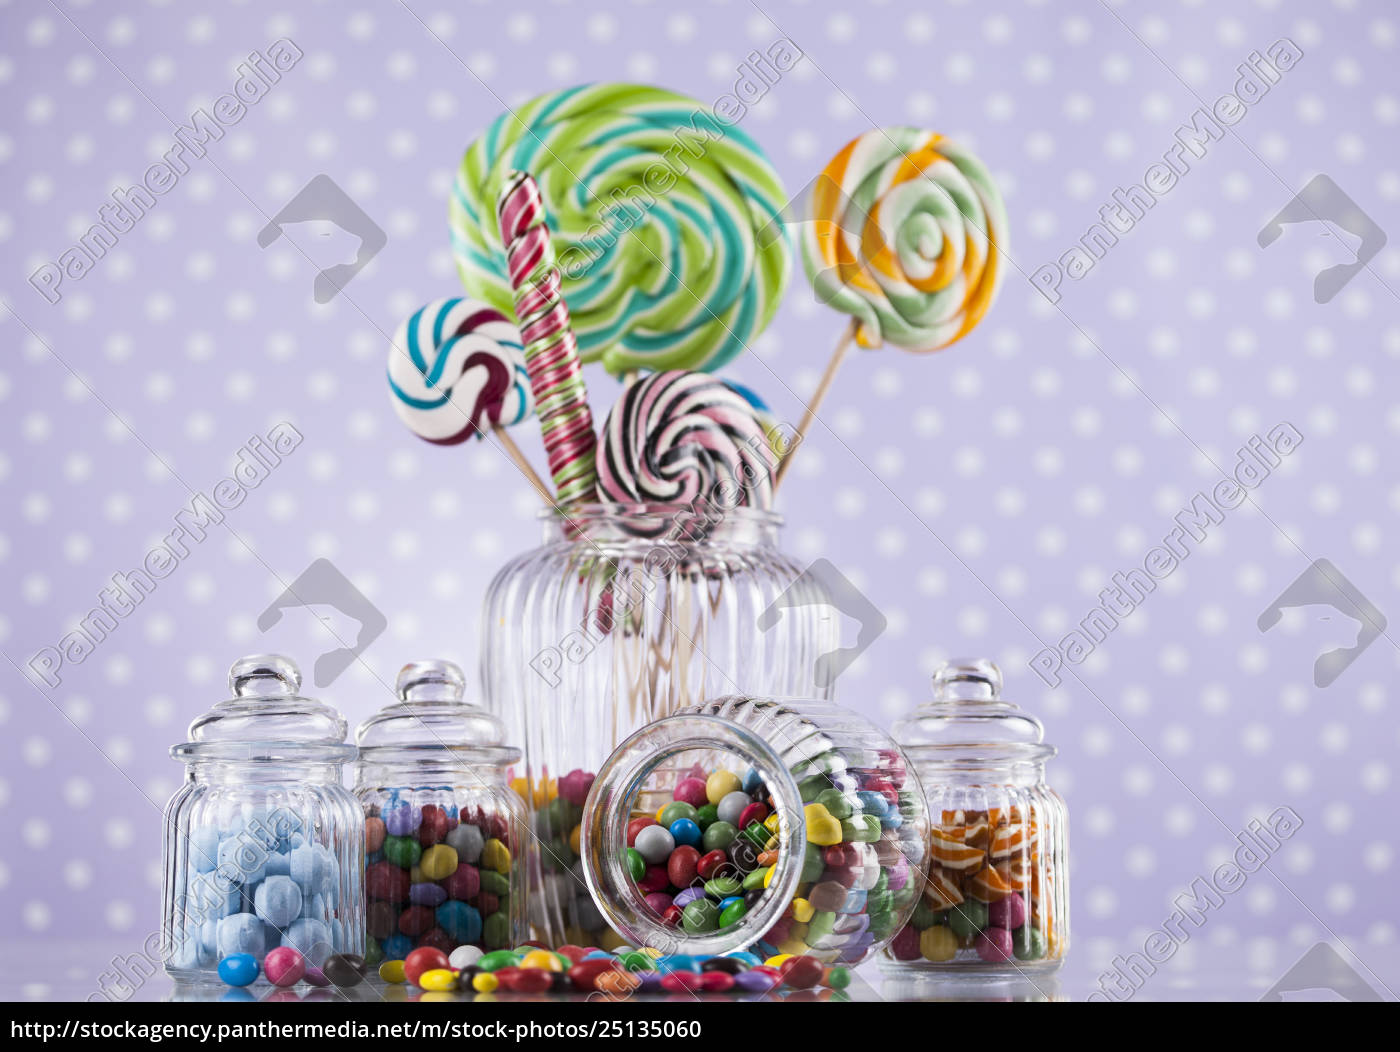 colorful, lollipops, and, different, colored, round - 25135060